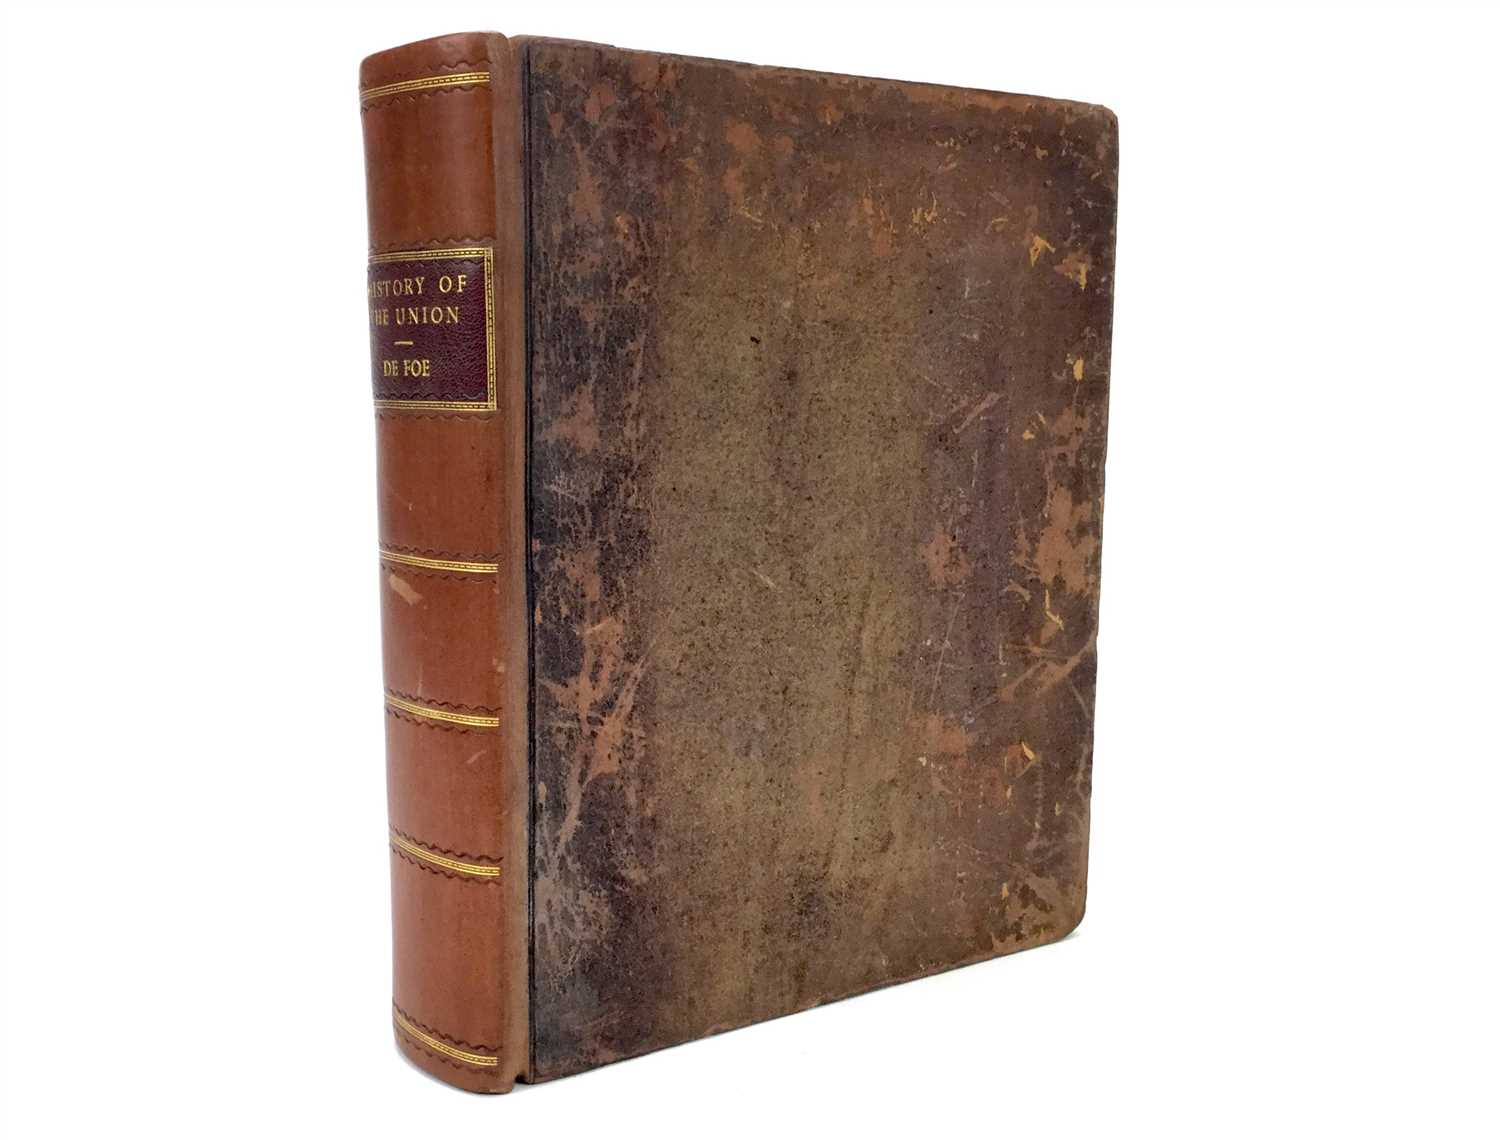 Lot 1582-HISTORY OF THE UNION BETWEEN ENGLAND AND SCOTLAND, BY DANIEL DE FOE